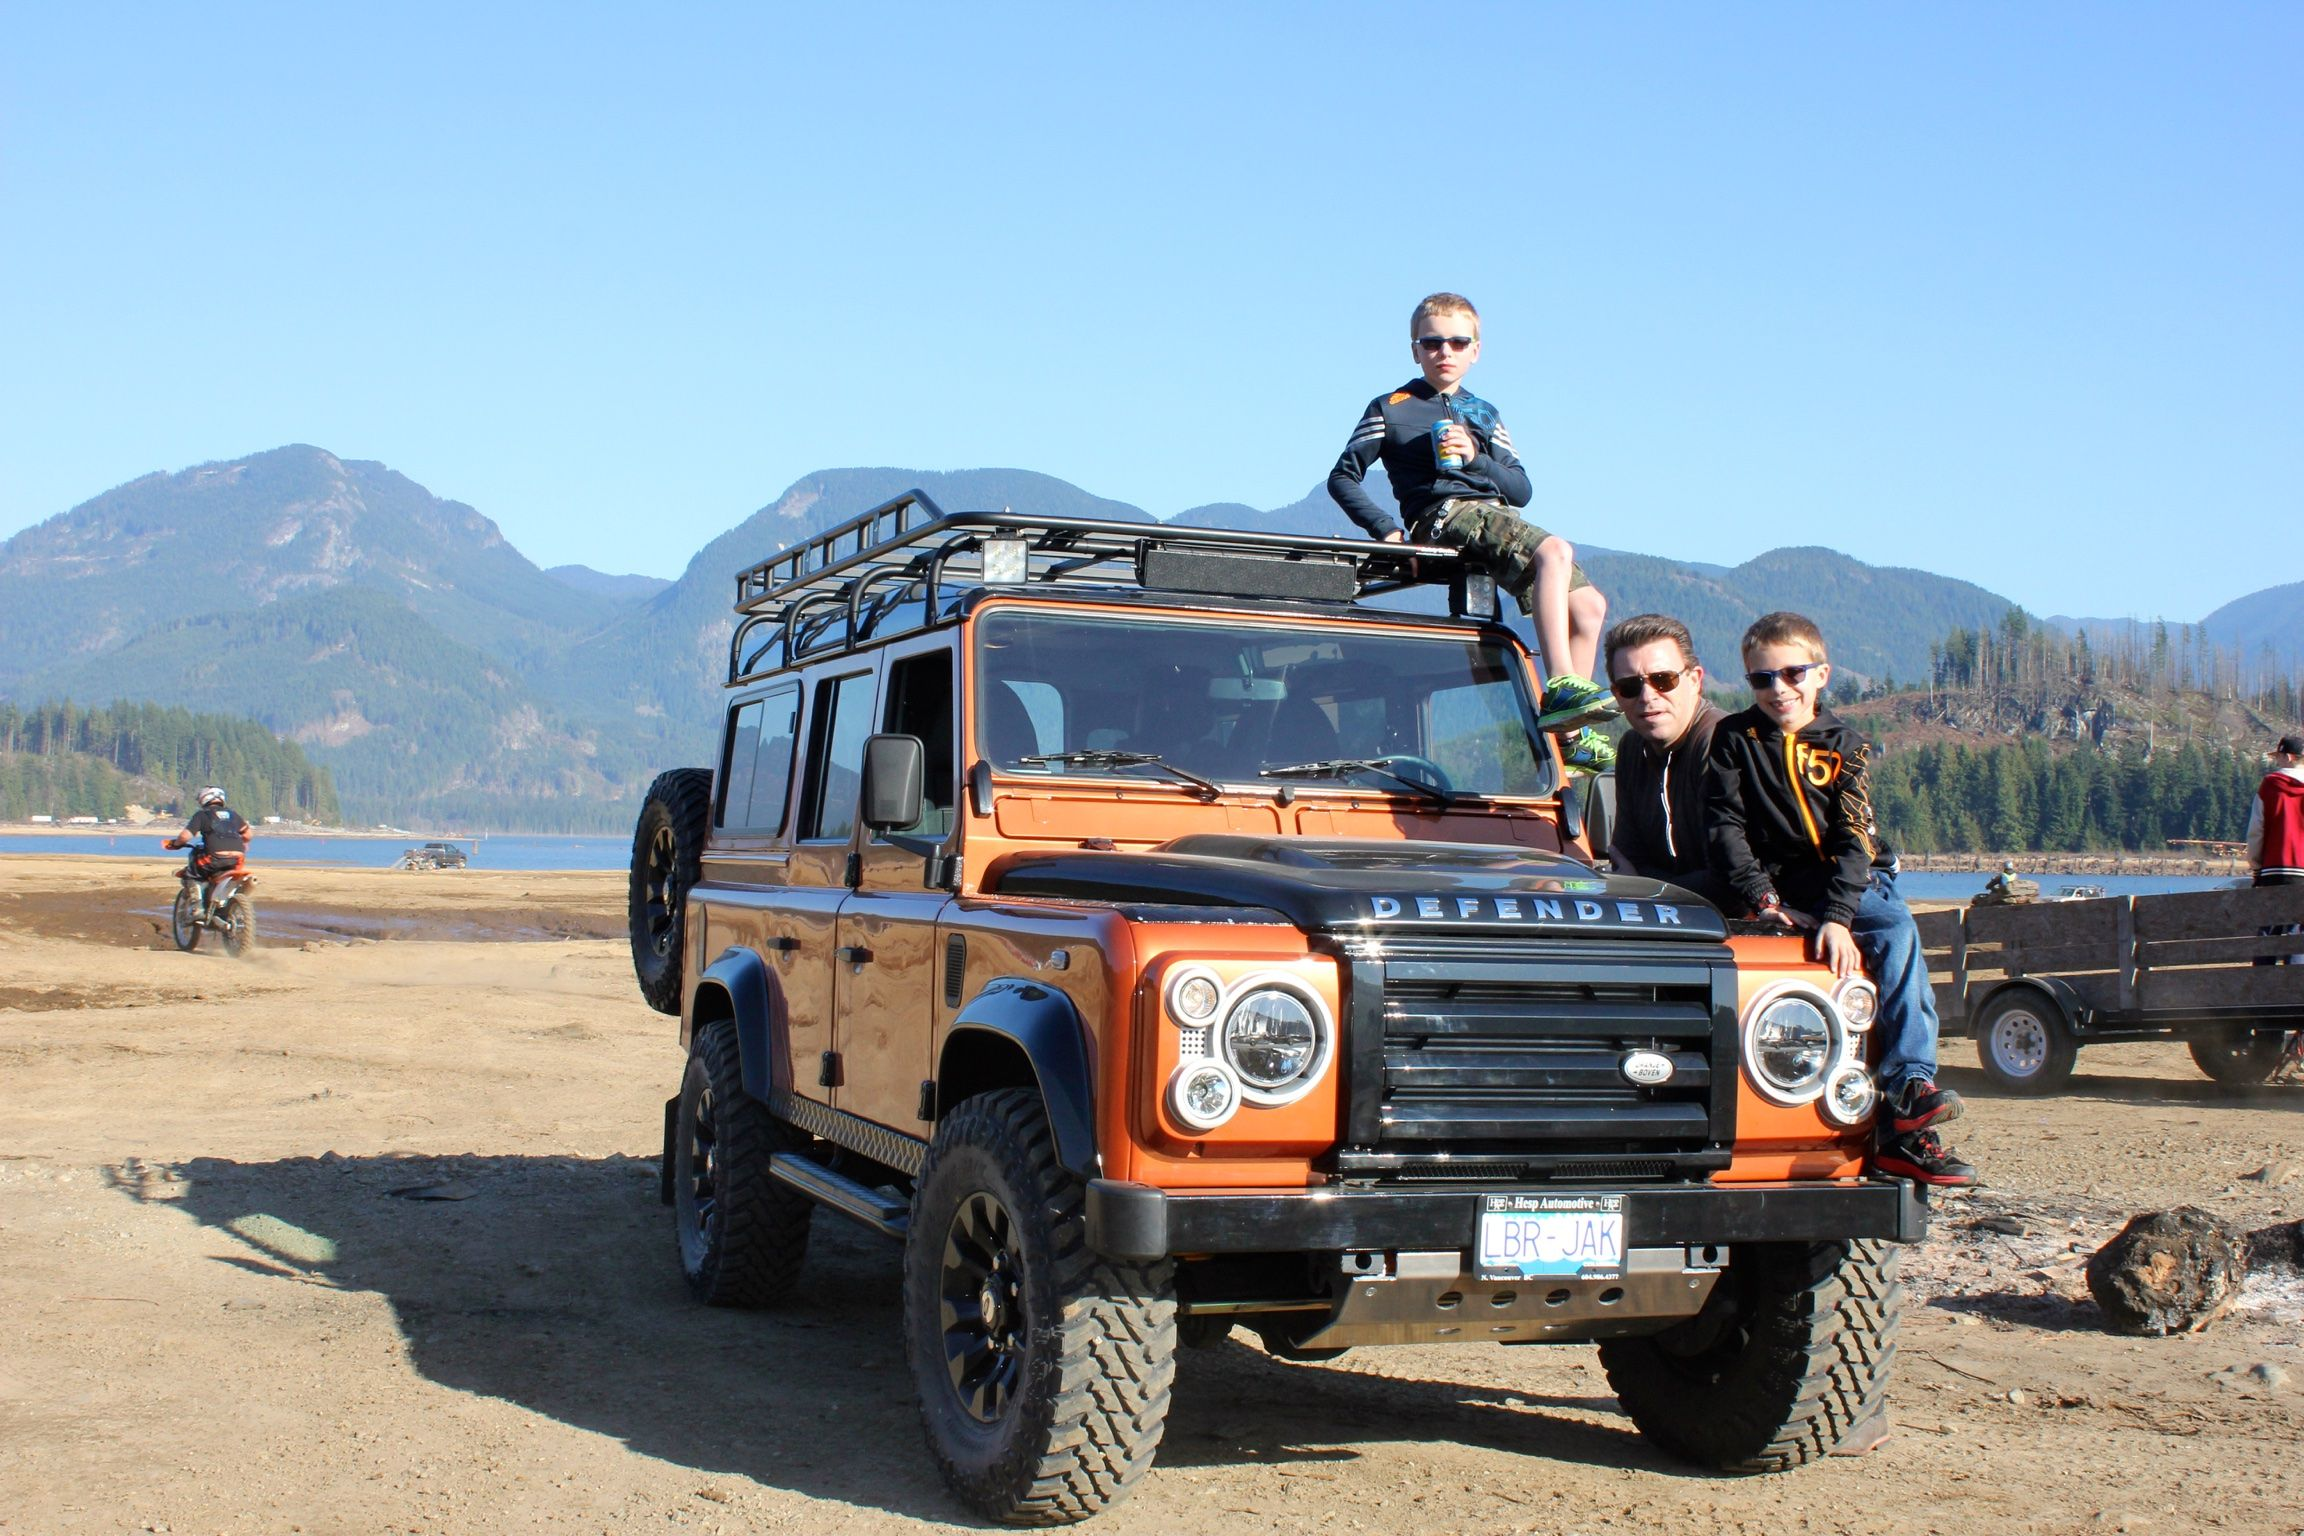 Pin by Cees de Jager on Our Land Rover Defender 110 TD5